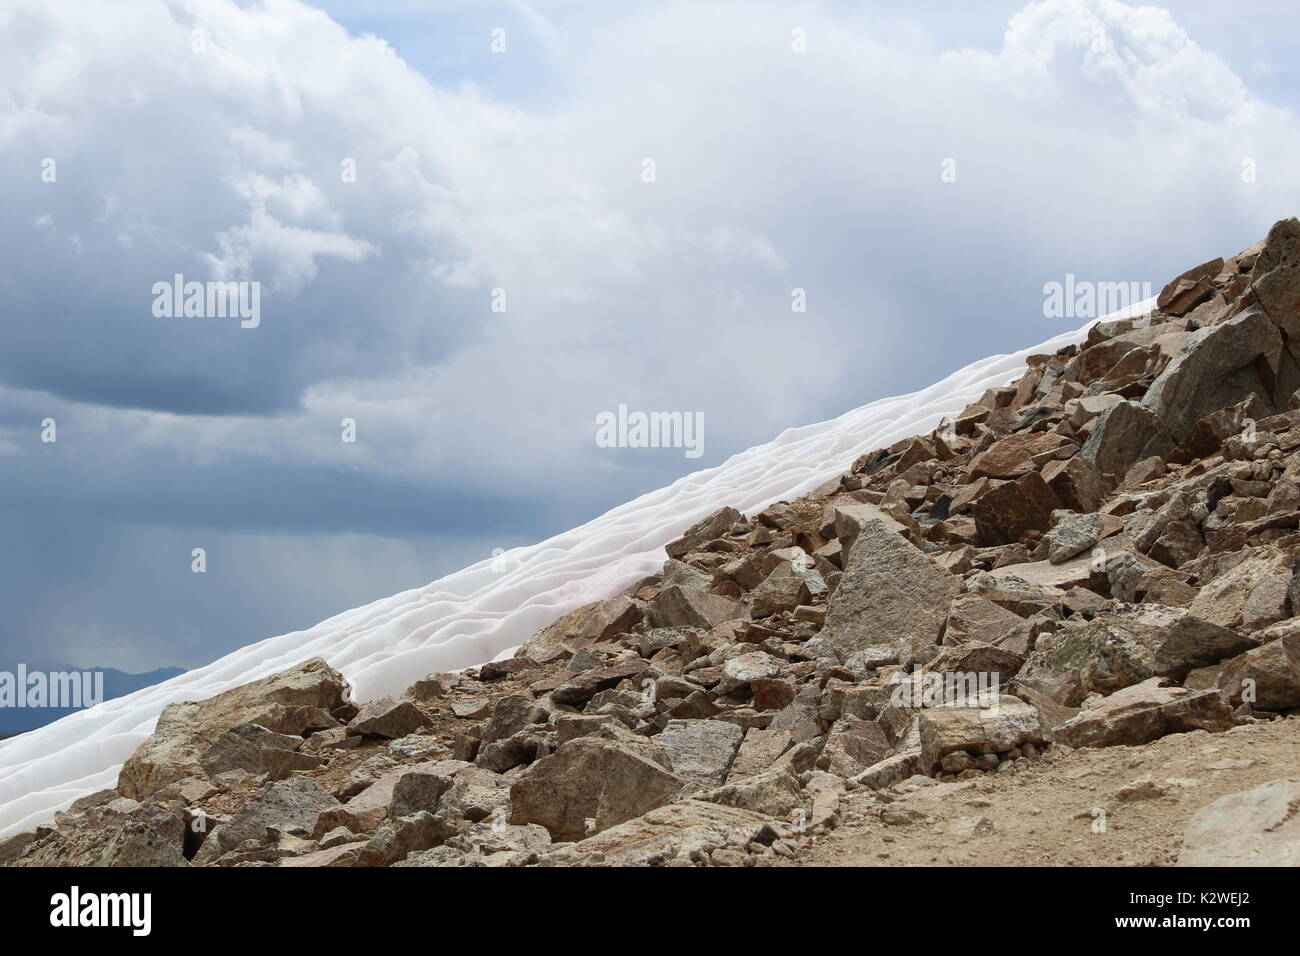 Snow near the summit of Mt. Democrat in the Mosquito Range of the Rocky Mountains, near Alma and FairPlay, Colorado. - Stock Image